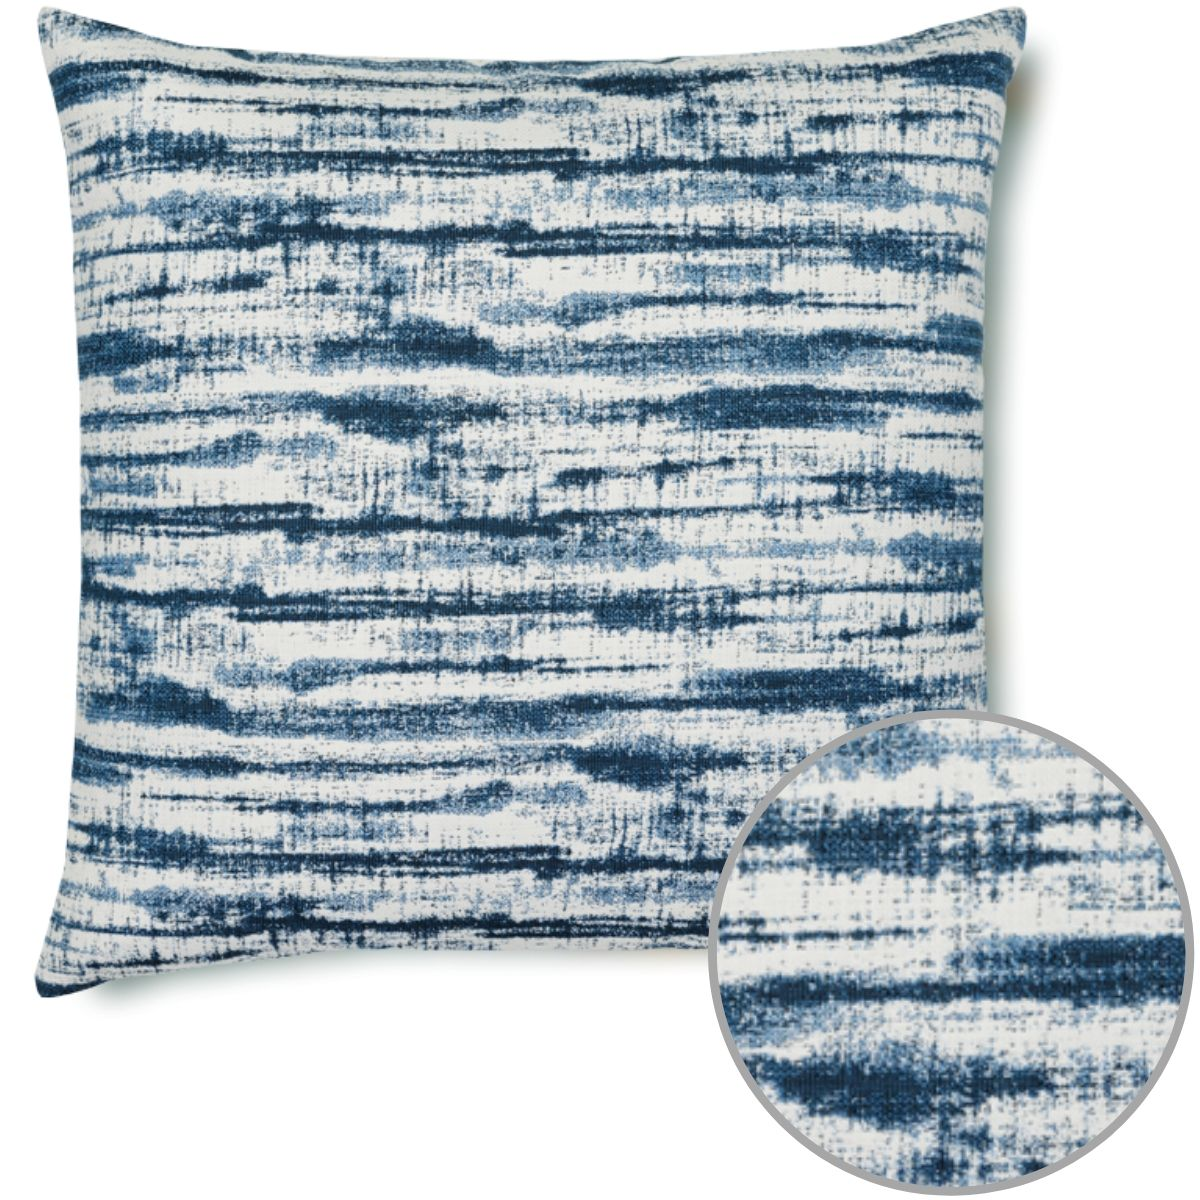 Elaine Smith Linear Indigo Pillow